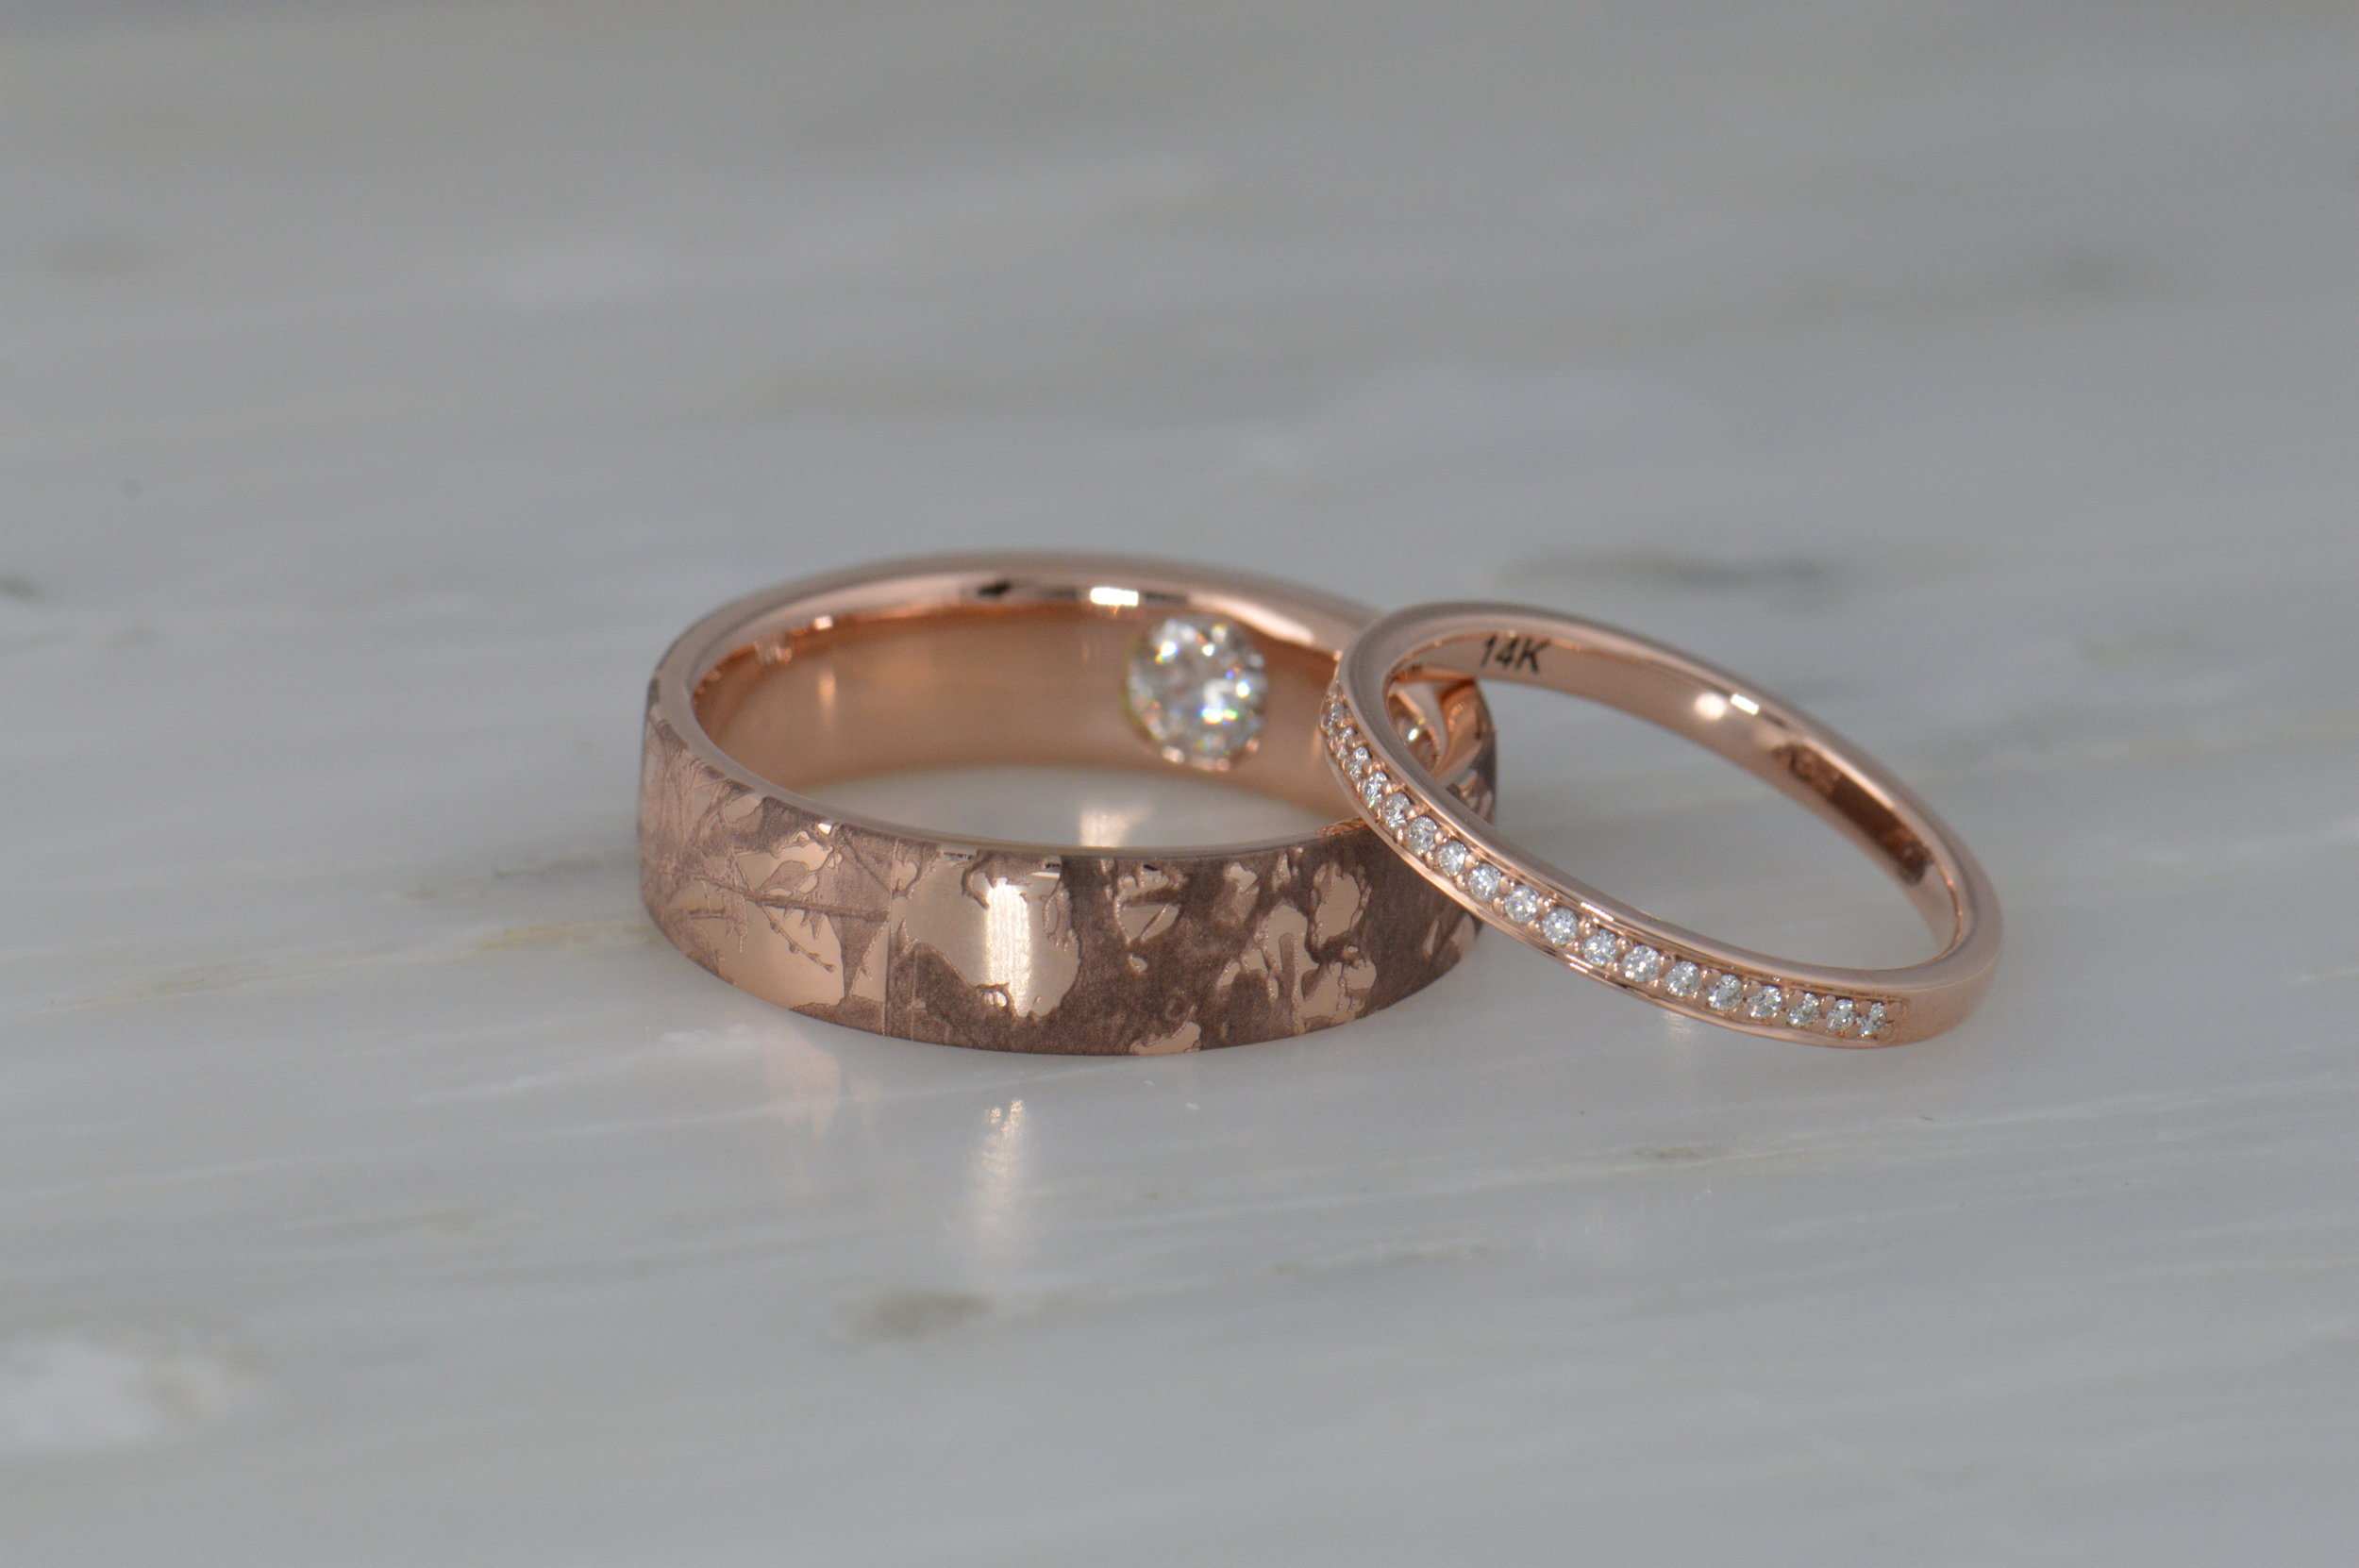 Autumn leaves photo from the client engraved on his wedding ring.